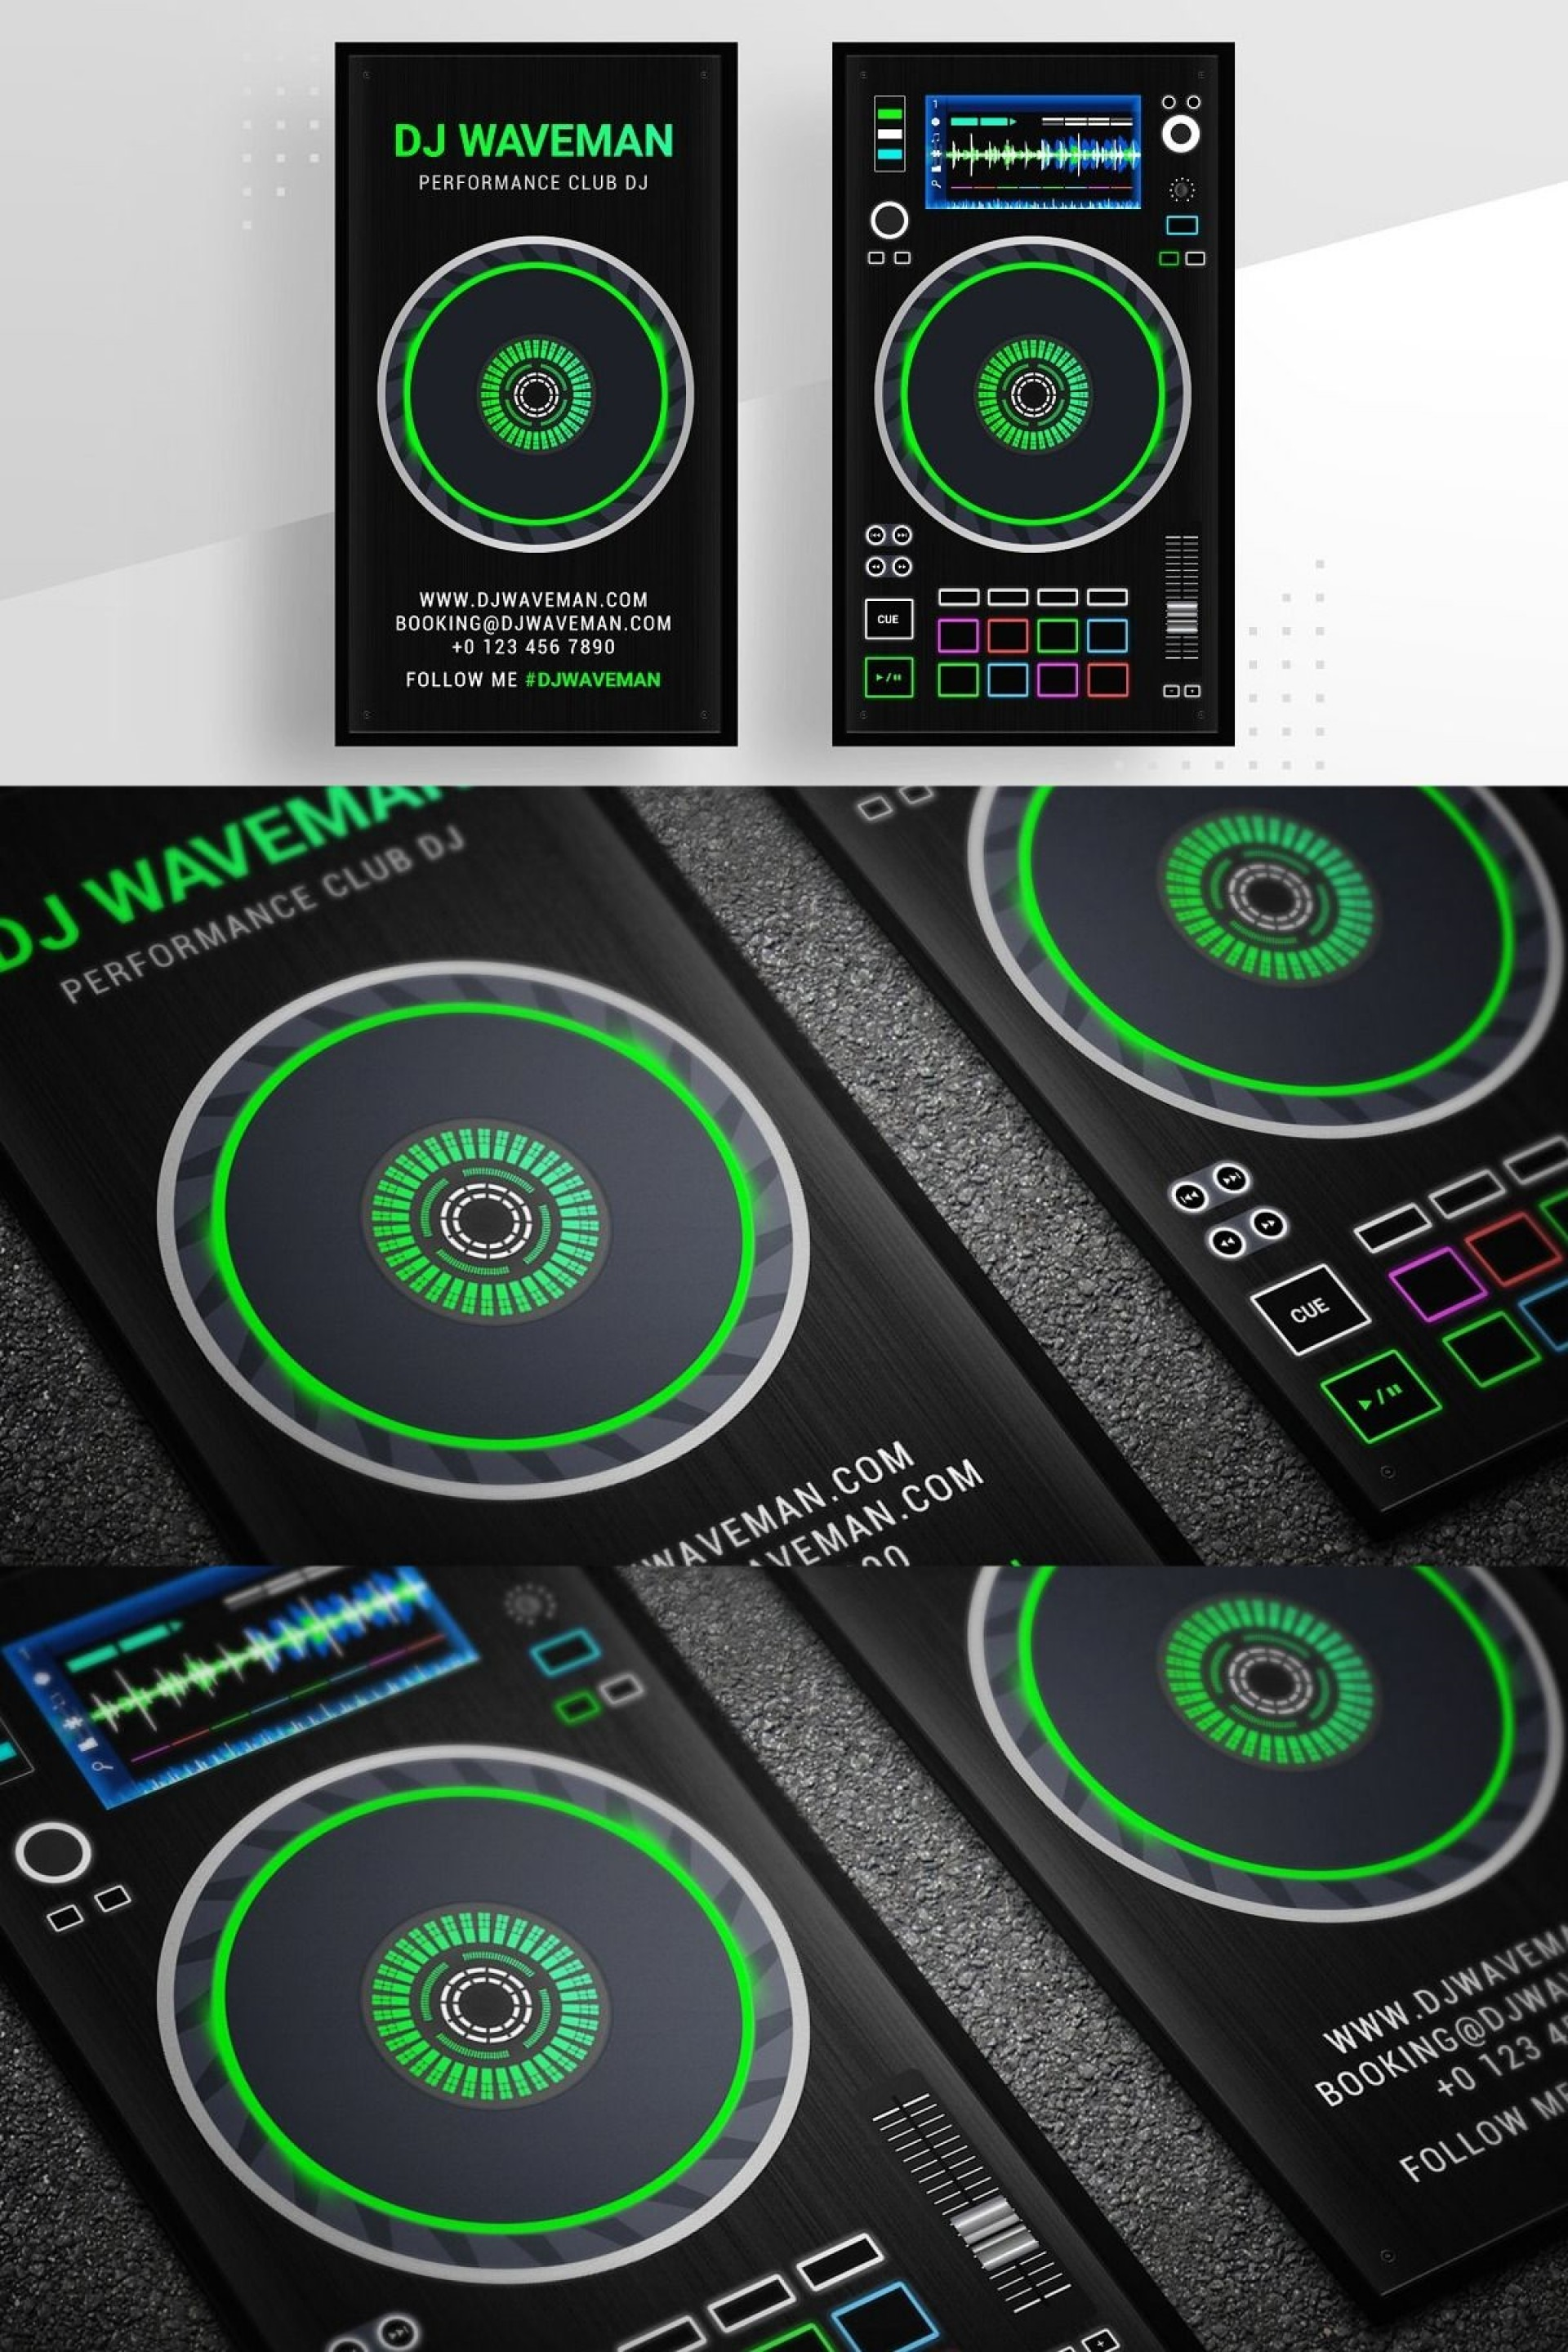 002 Remarkable Dj Busines Card Template High Resolution  Psd Free Download1920